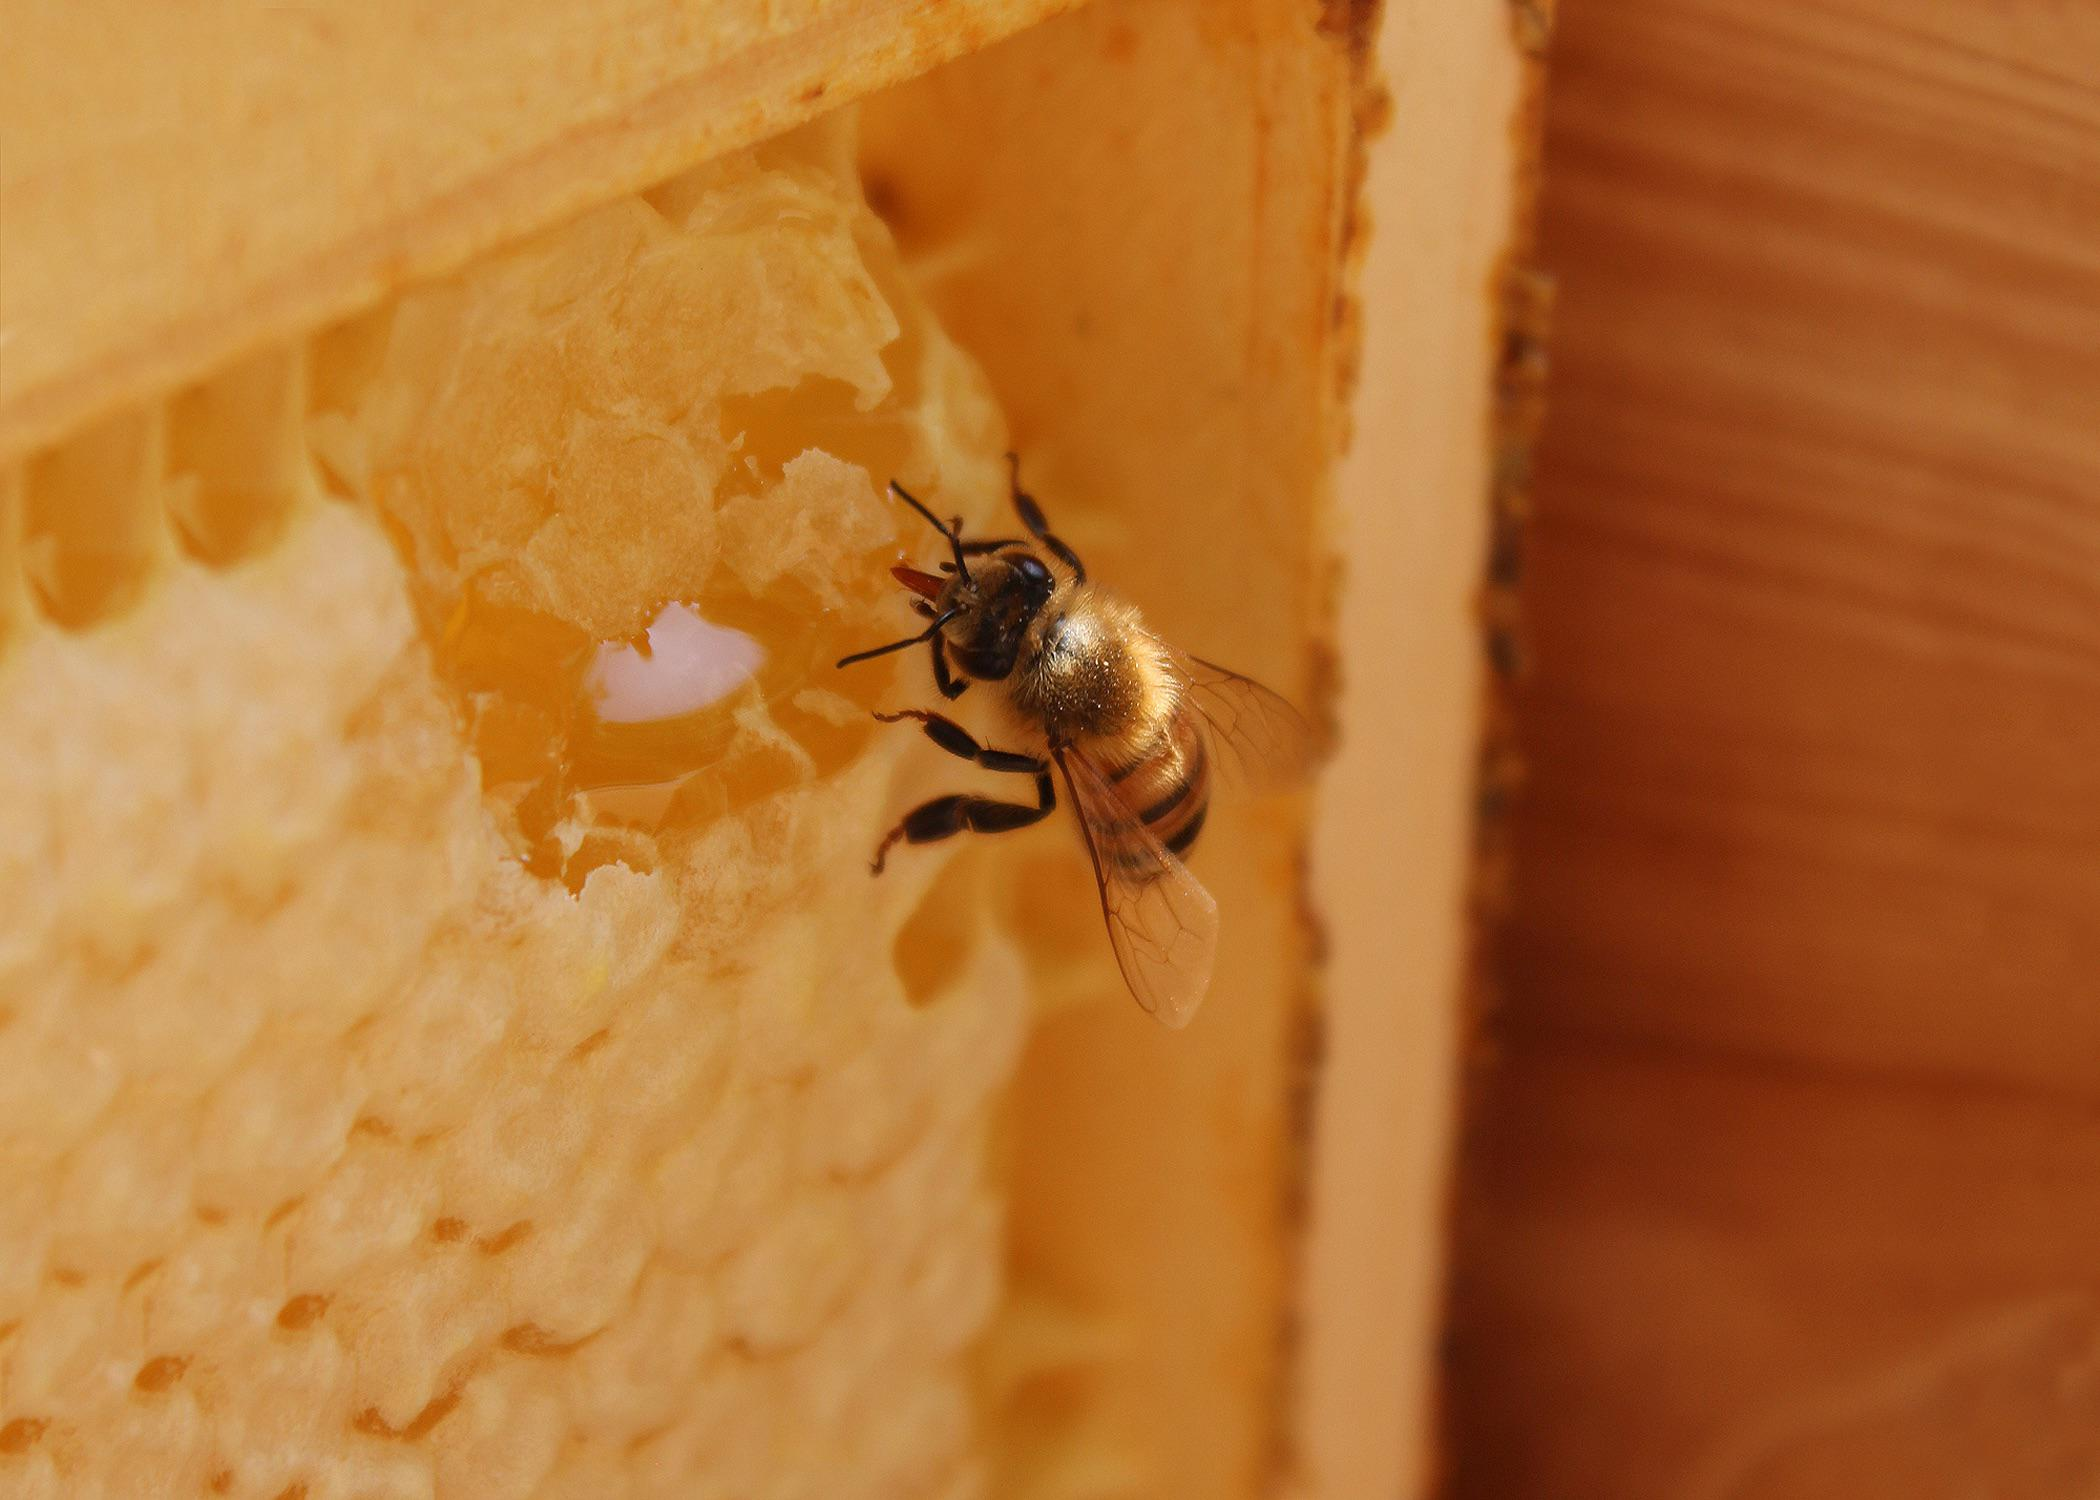 A worker bee sips honey from a piece of honeycomb in a frame.